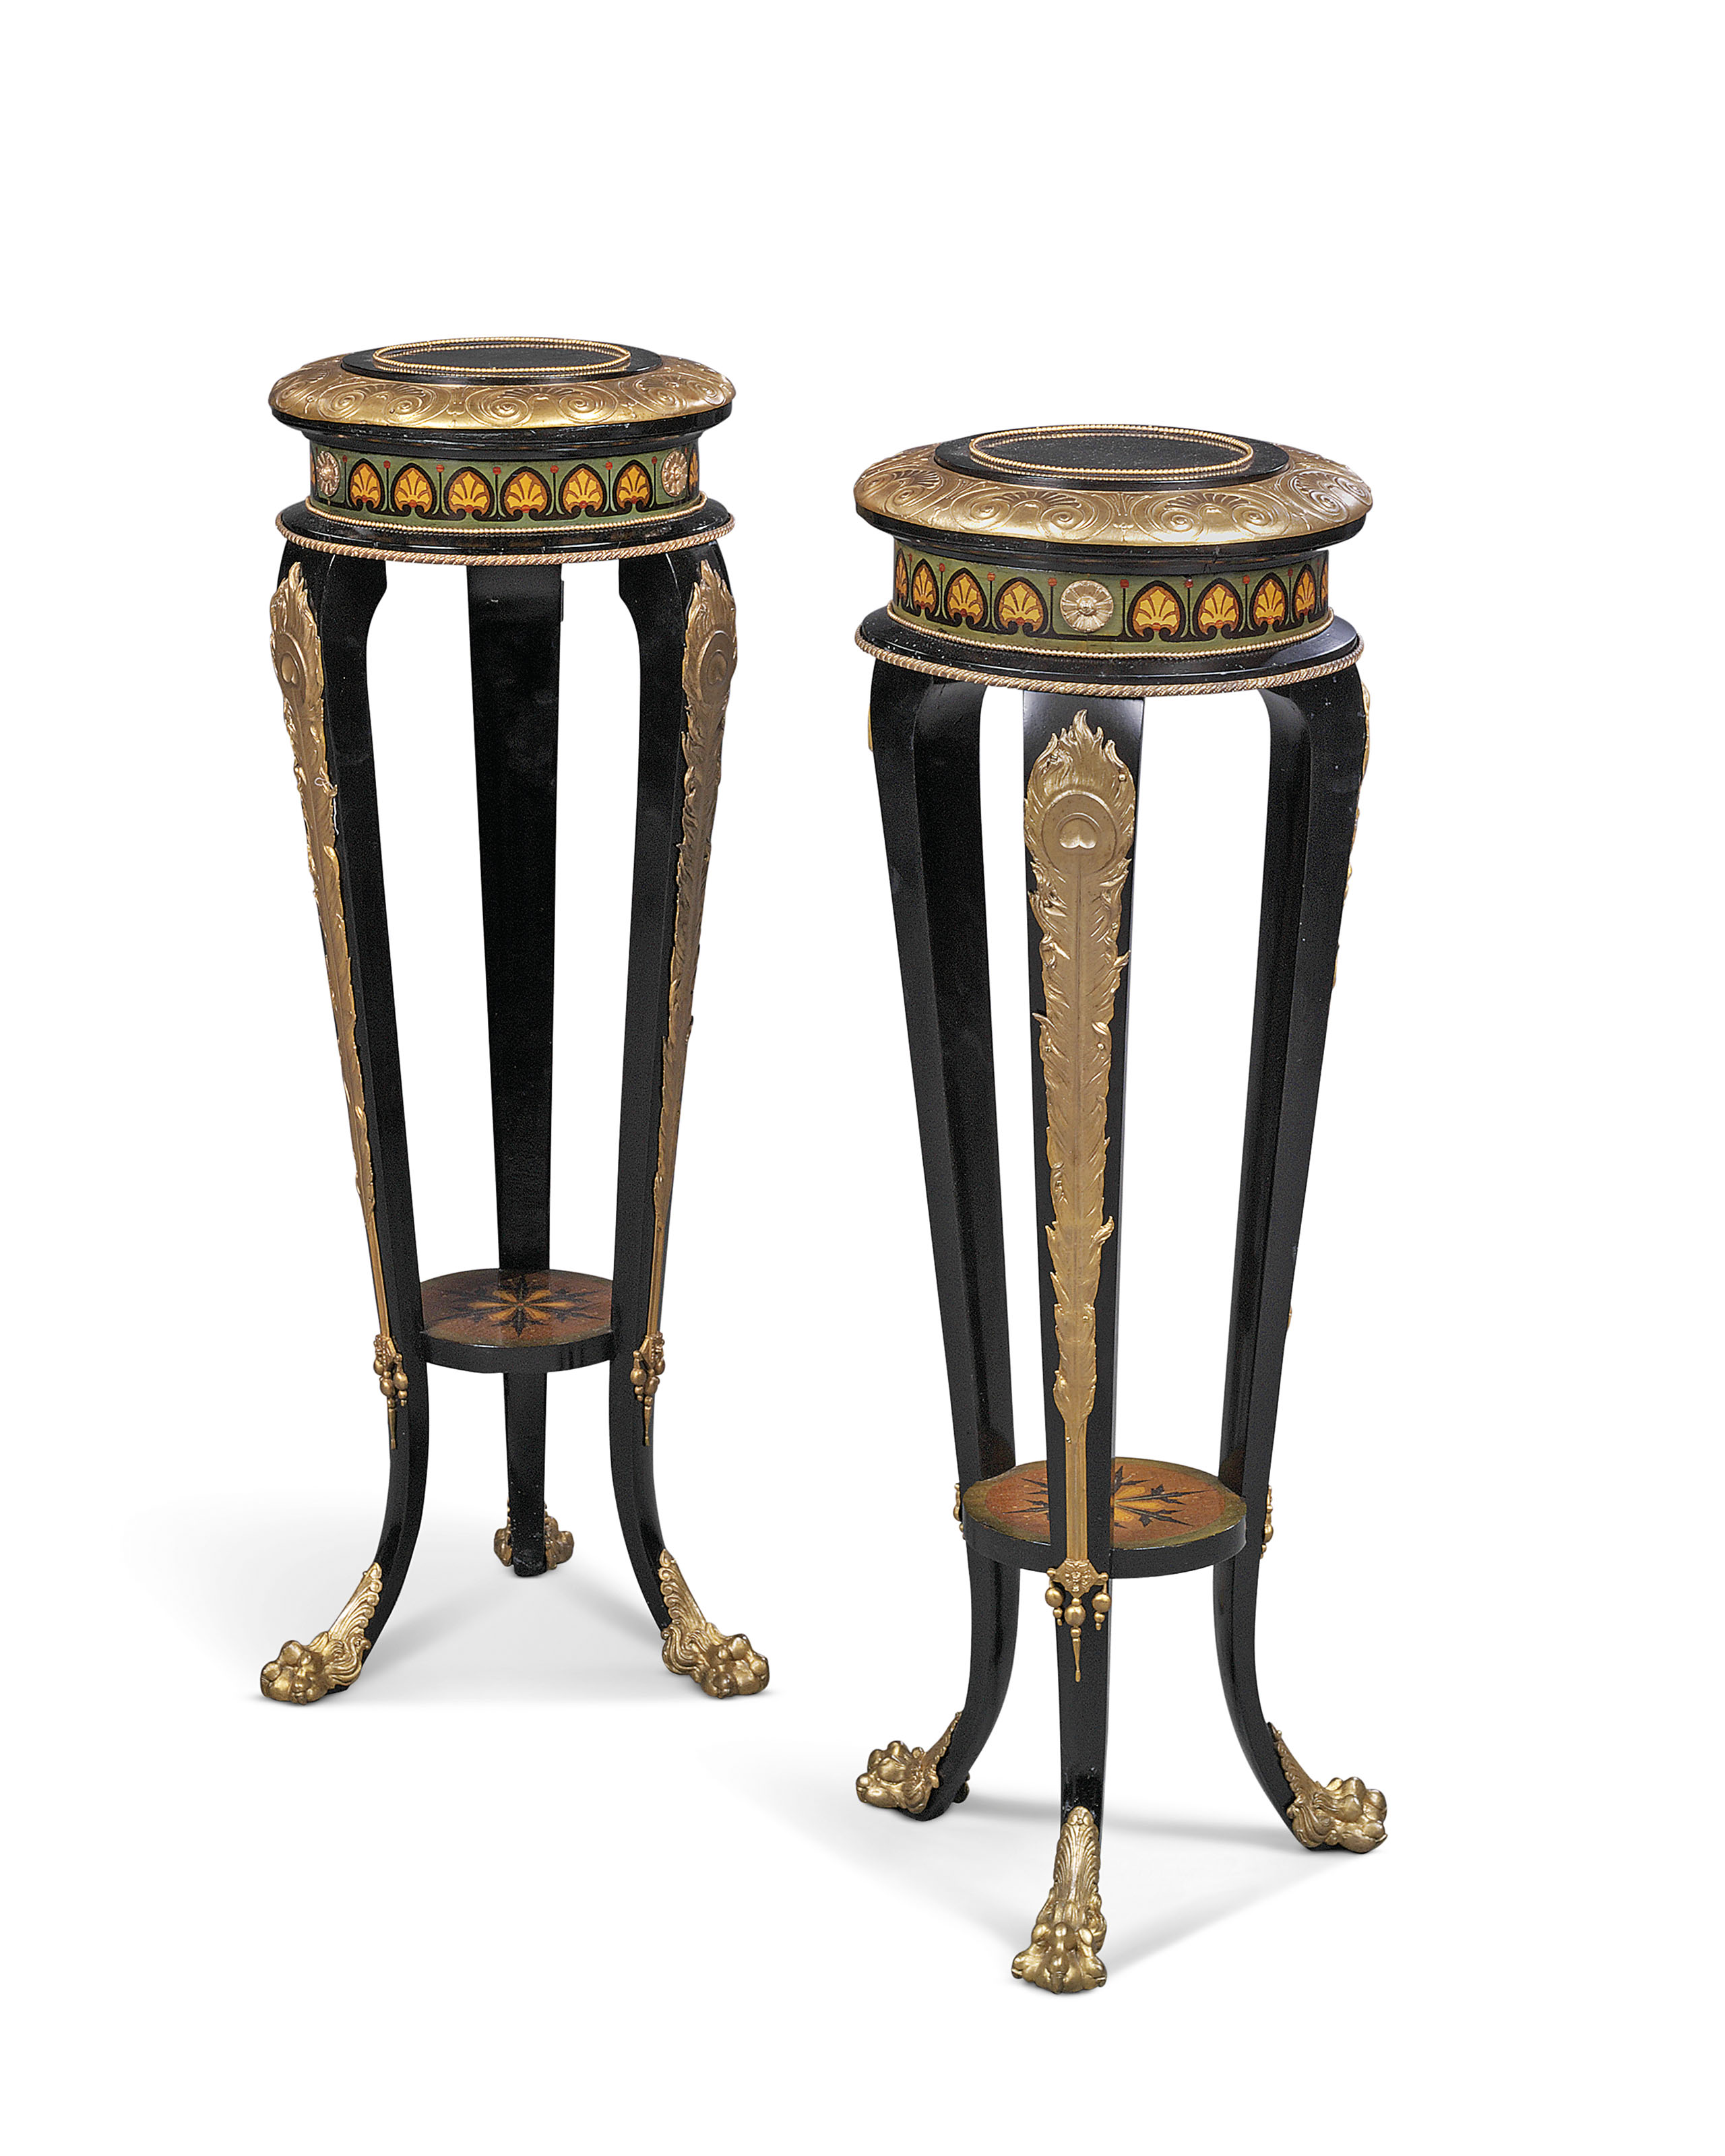 A PAIR OF FRENCH GILT-COPPER ELECTROTYPE MOUNTED, STAINED SYCAMORE, EBONY AND EBONIZED MARQUETRY PEDESTALS